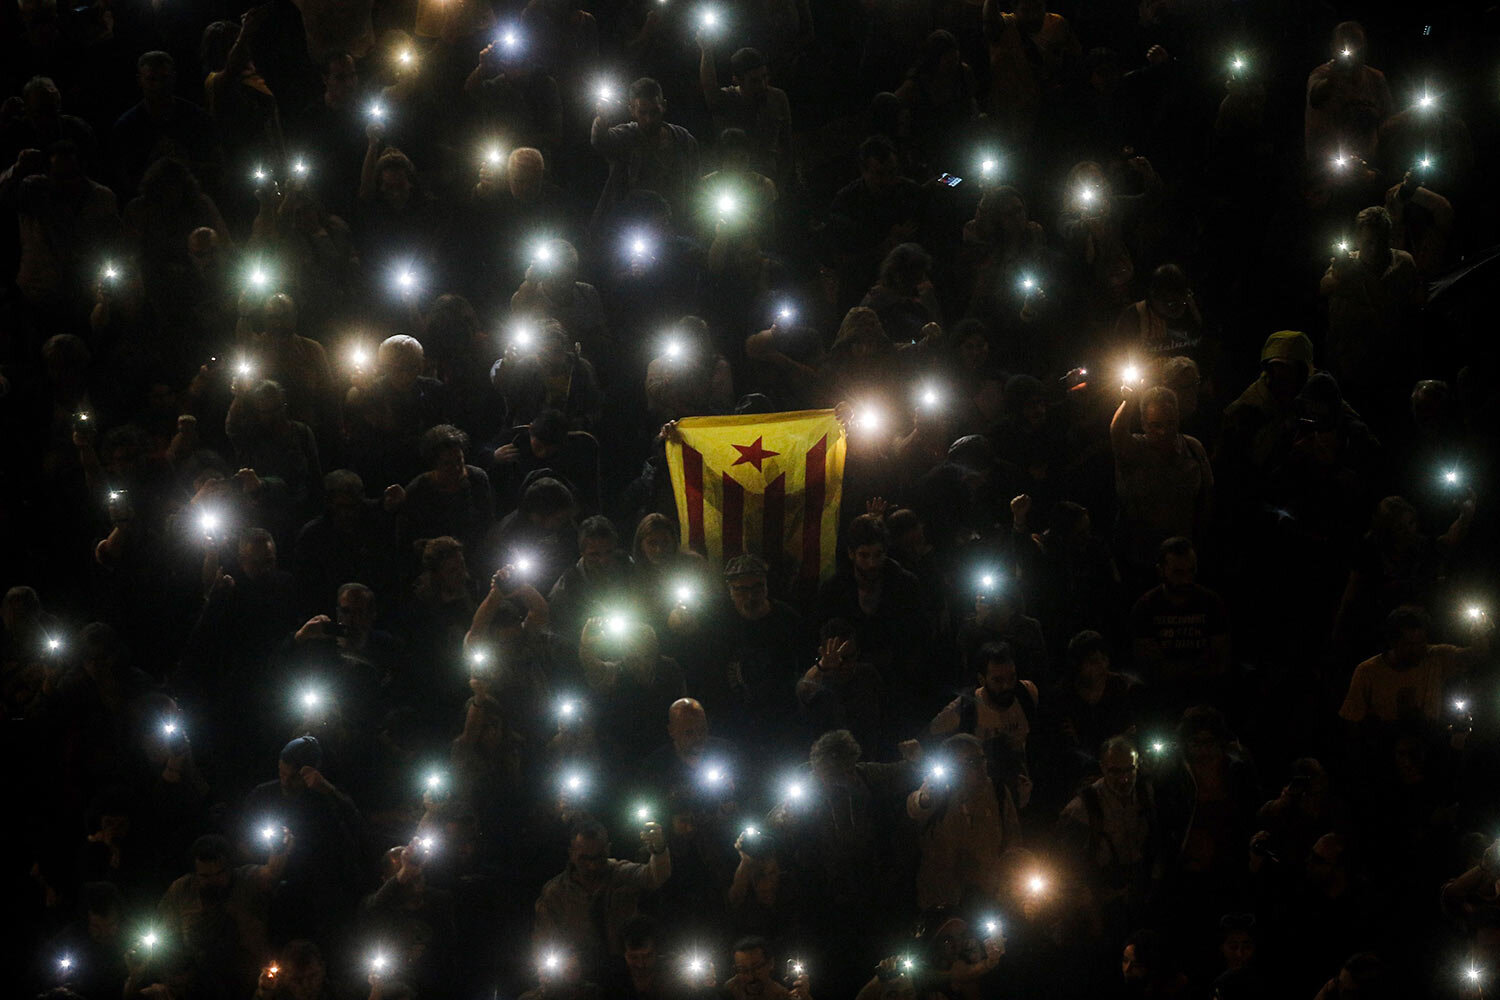 A Catalonian independence flag is held up as people hold up their phones with the torches switched on during a Catalan pro-independence protest in Barcelona, Spain, Sunday, Oct. 20, 2019. (AP Photo/Joan Mateu)